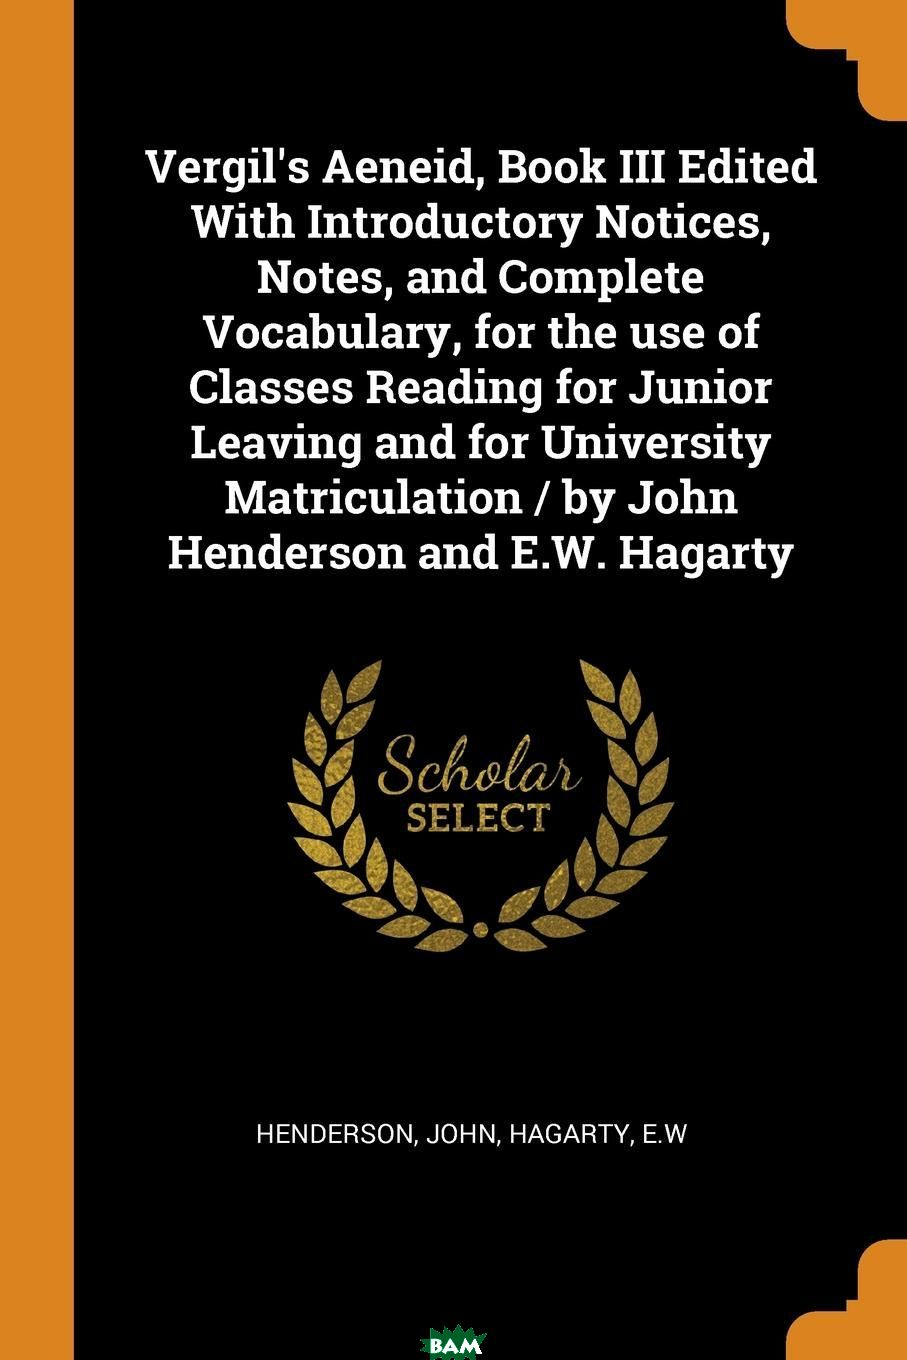 Купить Vergil.s Aeneid, Book III Edited With Introductory Notices, Notes, and Complete Vocabulary, for the use of Classes Reading for Junior Leaving and for University Matriculation / by John Henderson and, John Henderson, EW Hagarty, 9780353355347